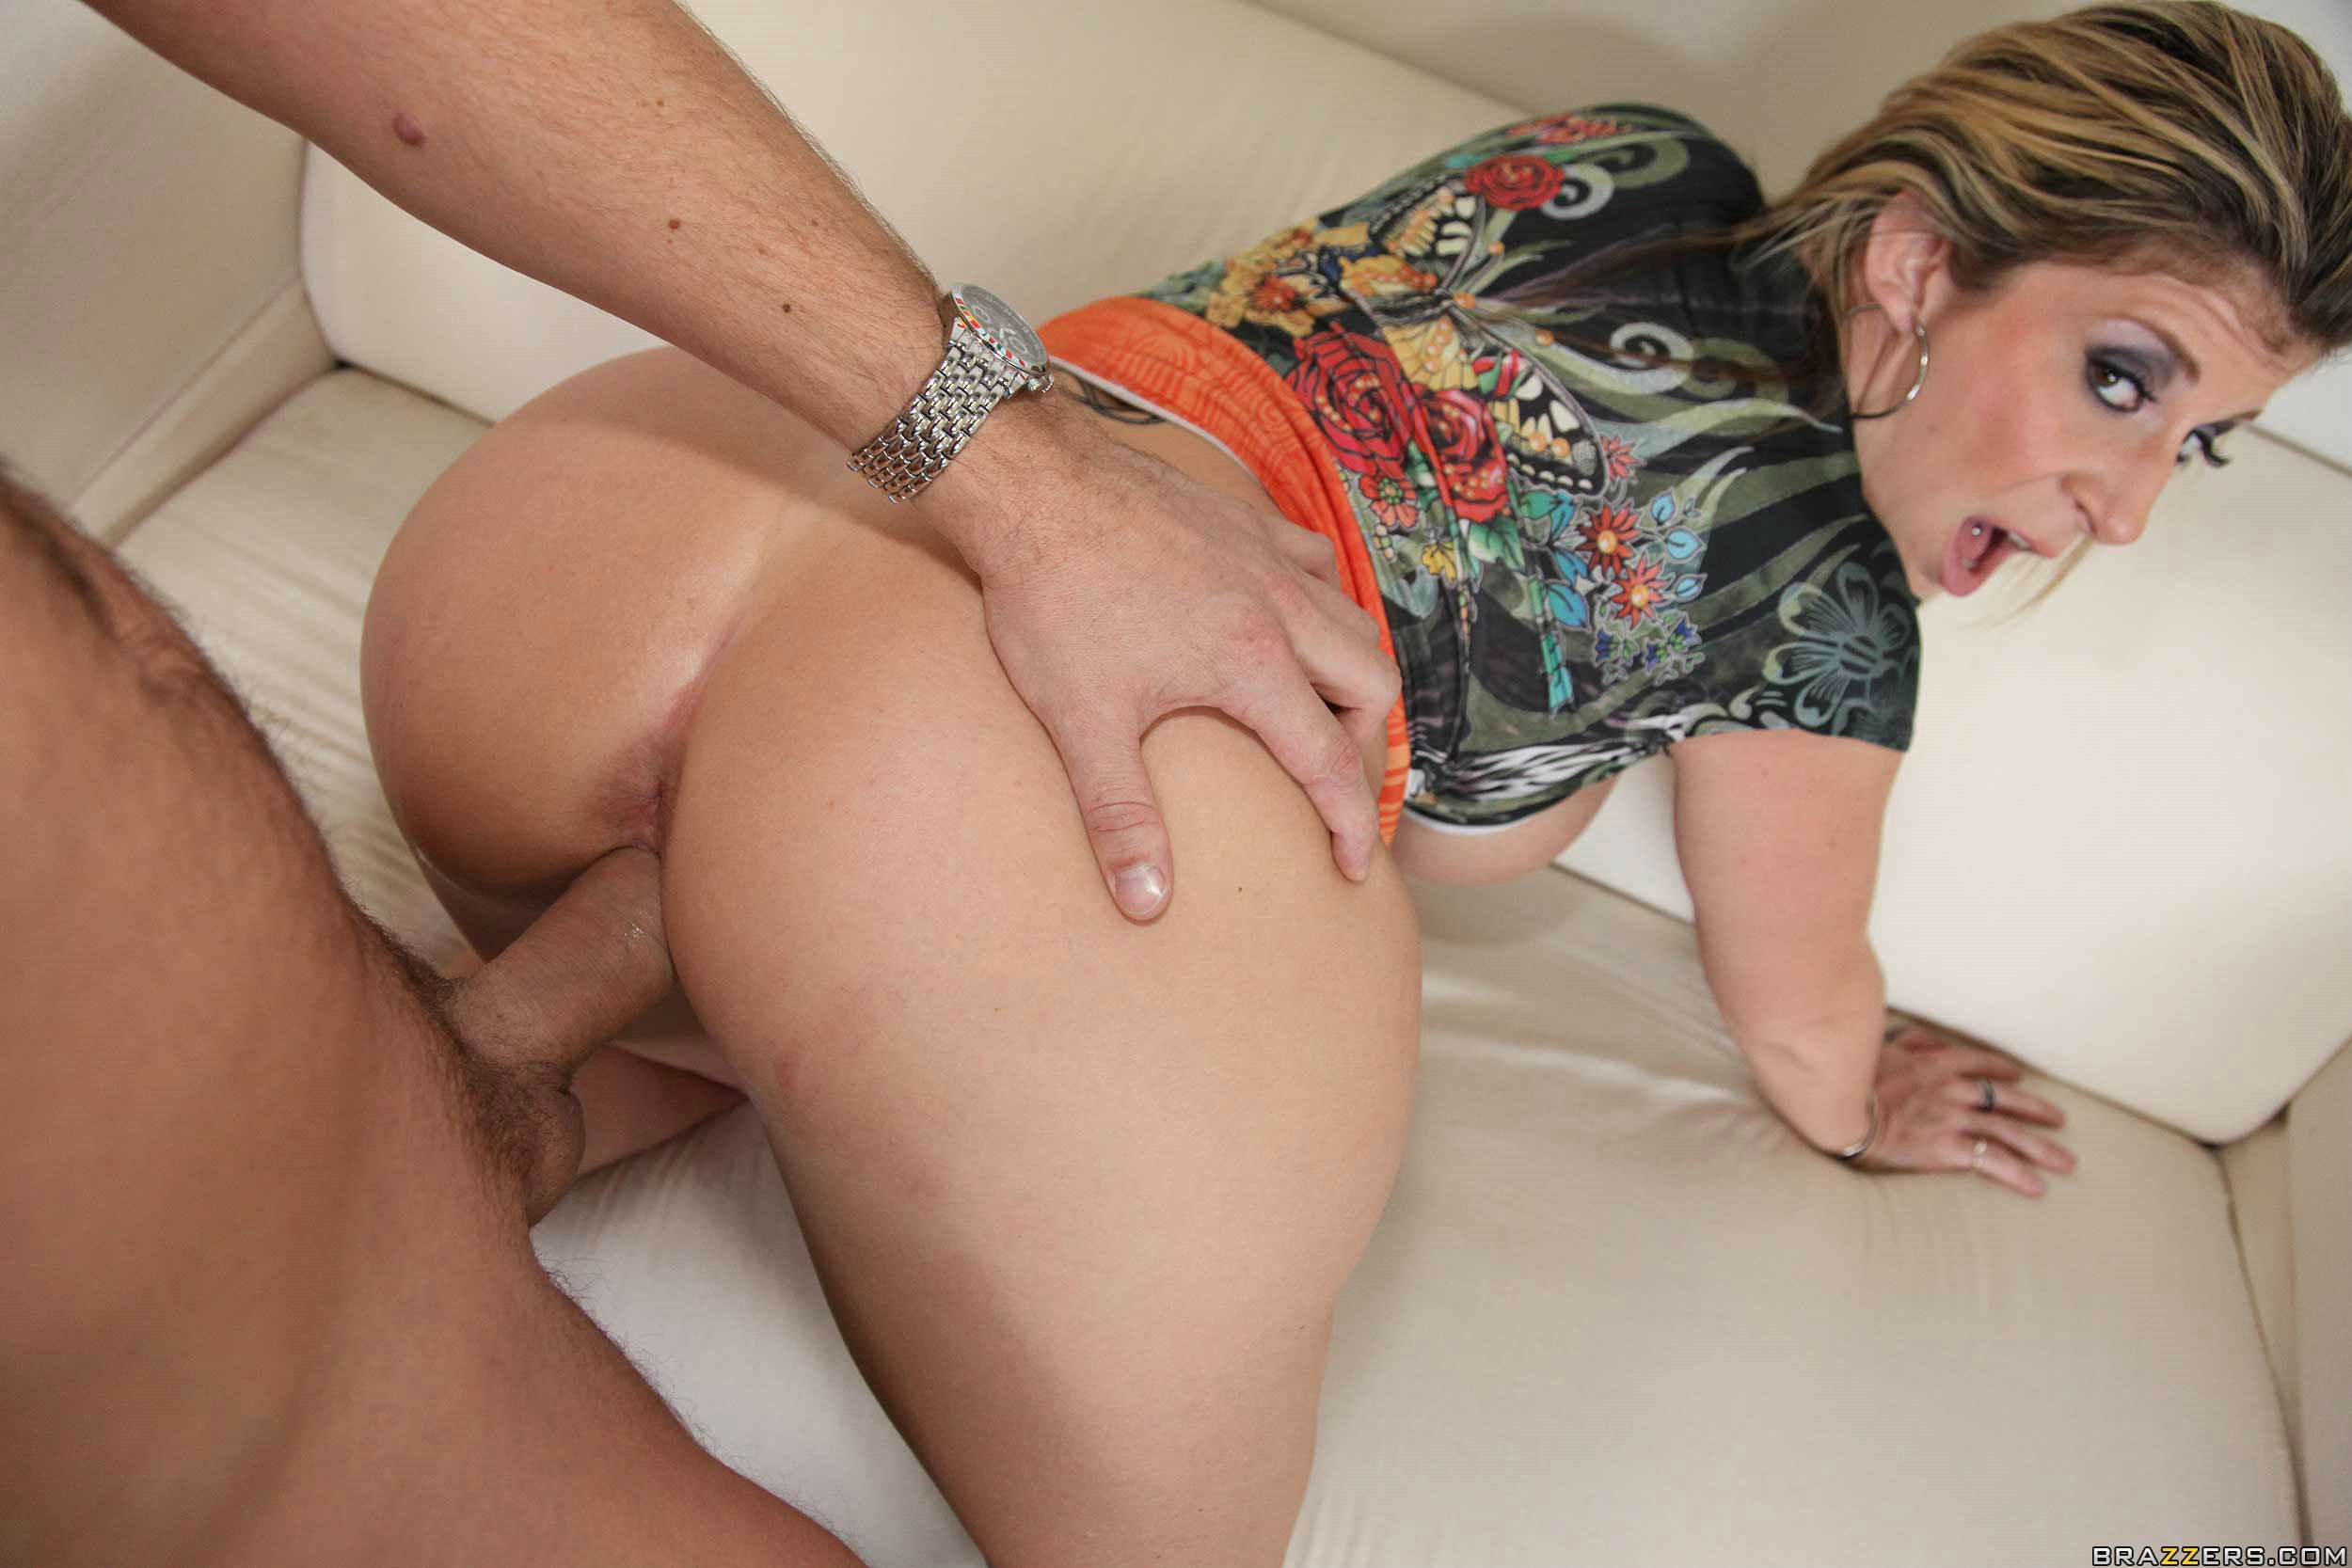 Sara jay fucking sex accept. The